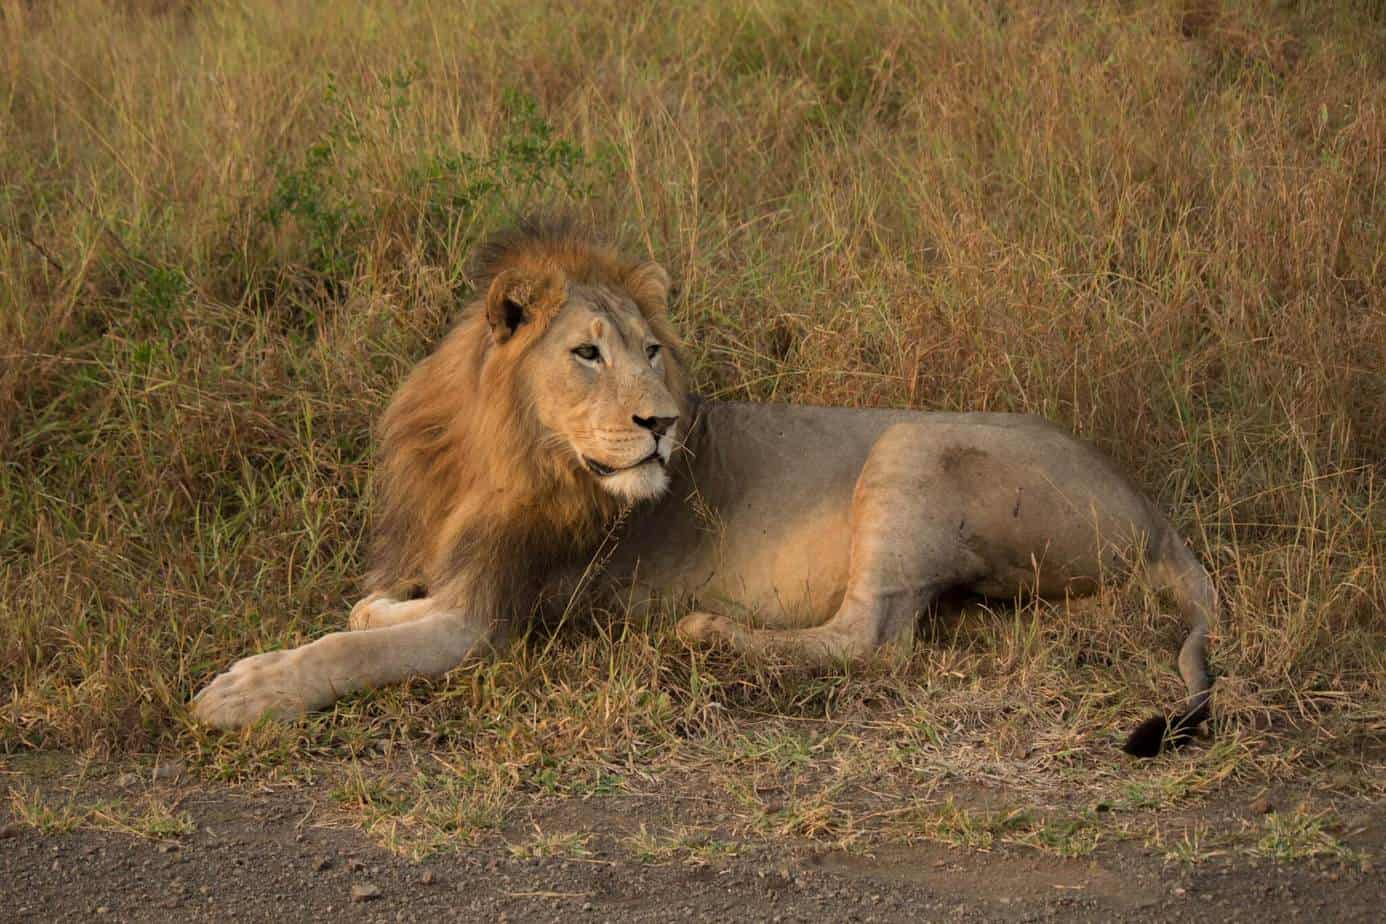 African Lion @ Thanda Private Game Reserve. Photo: Håvard Rosenlund